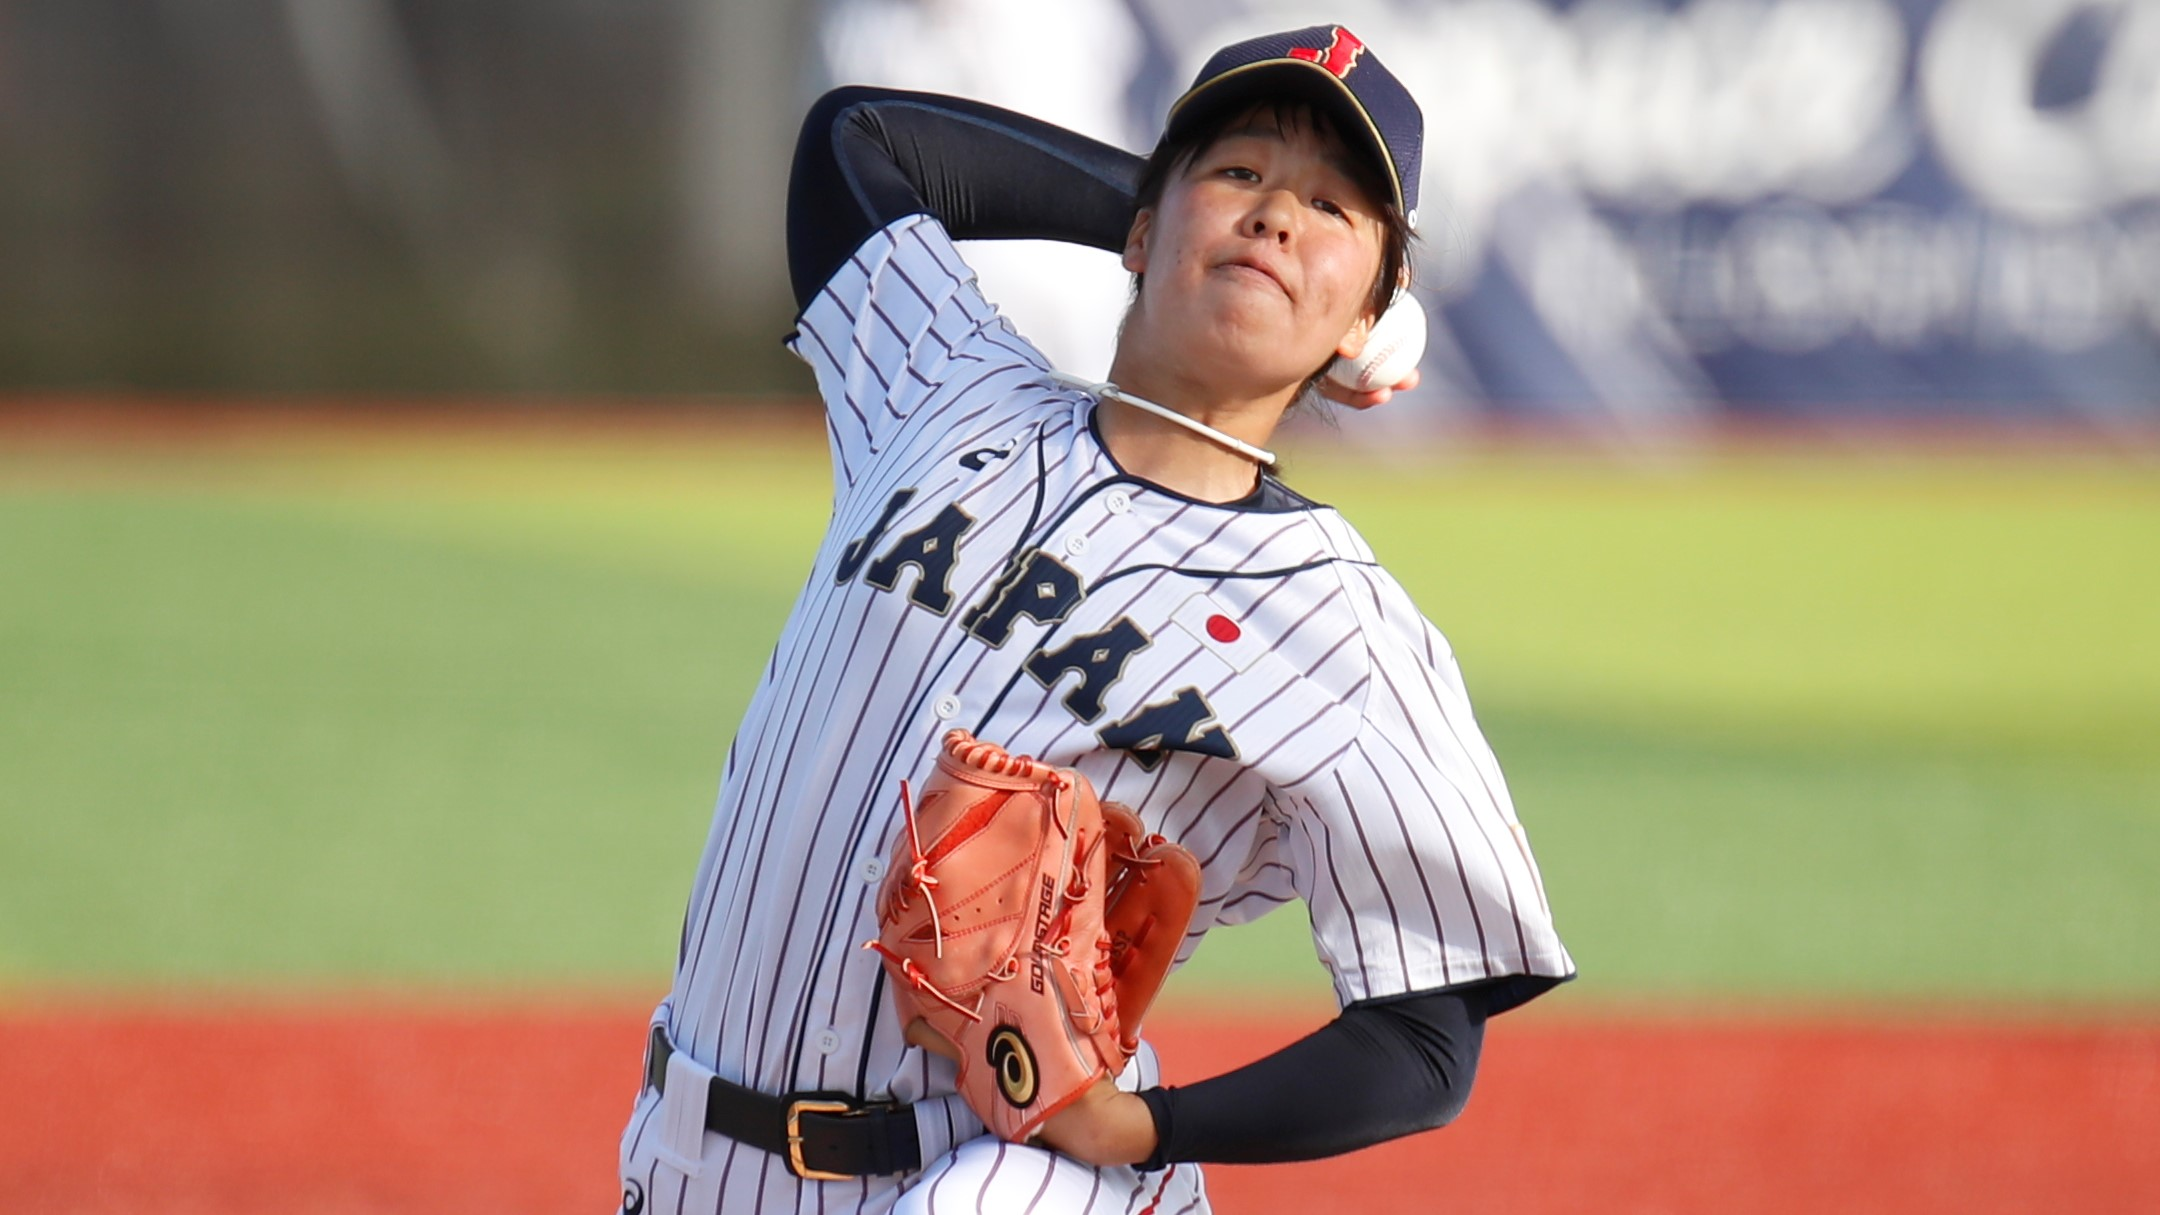 Miyu Shimizu pitched five innings to record the win for Japan